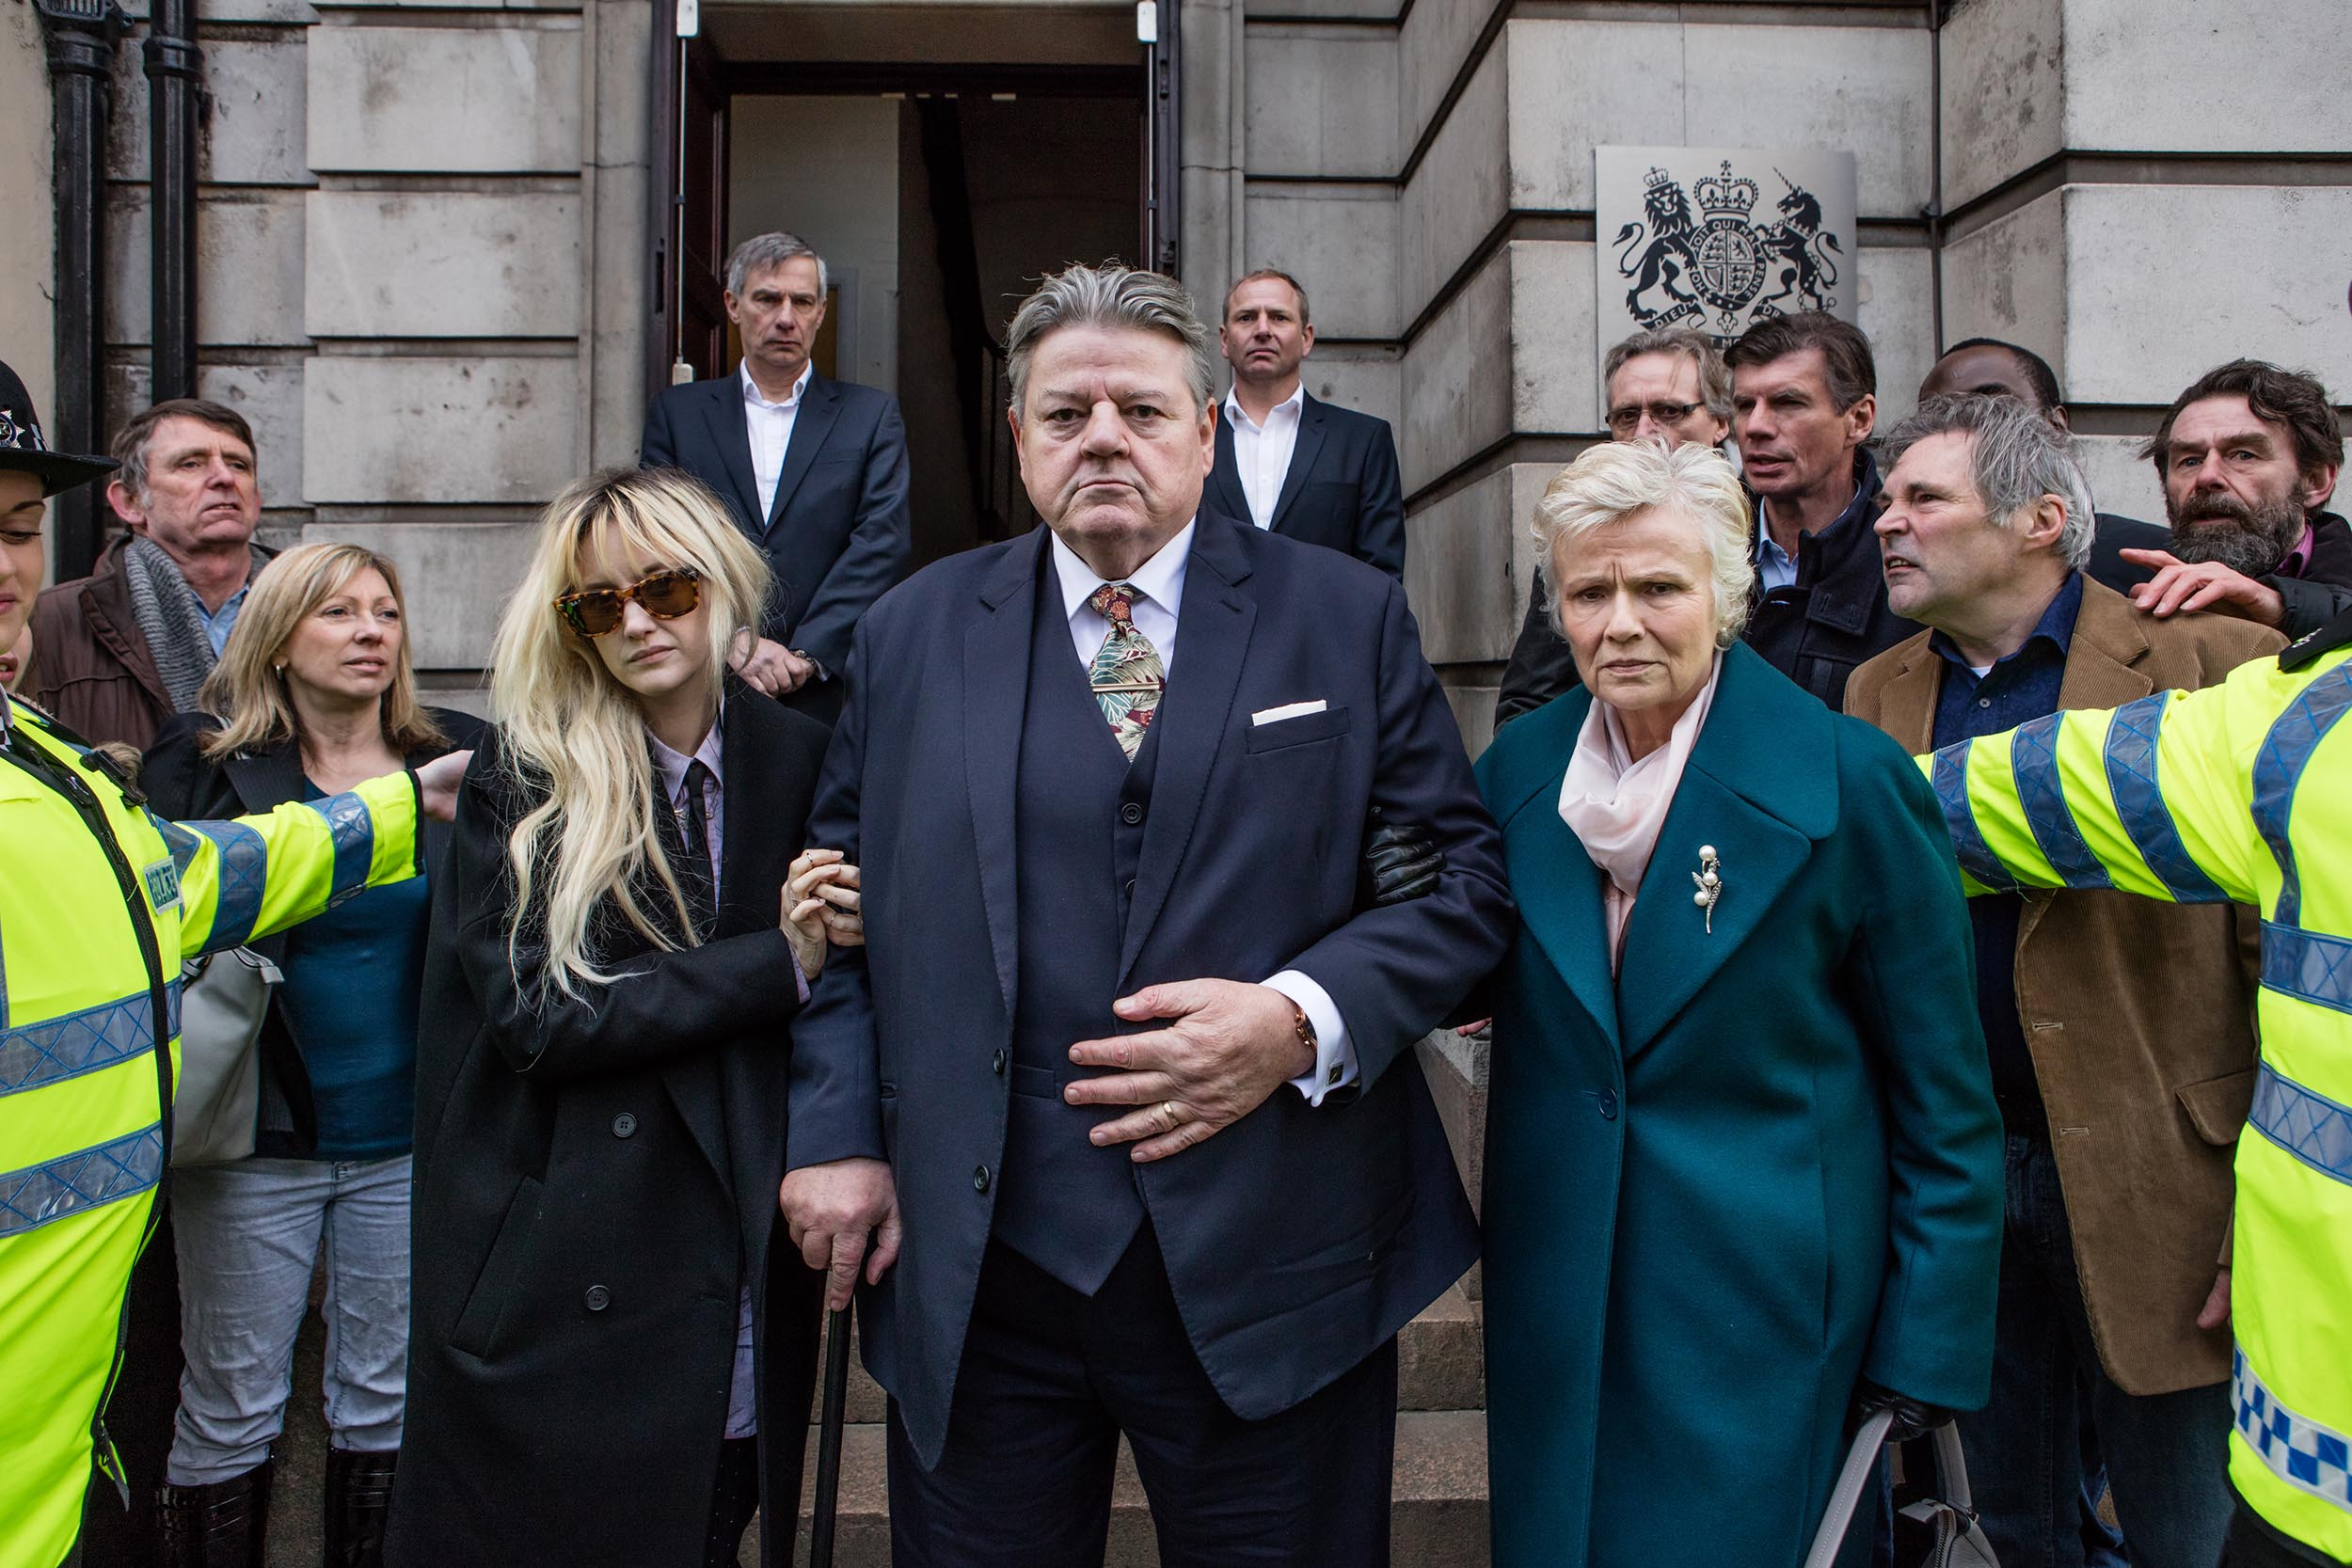 Robbie Coltrane and Julie Walters turn in 'Bafta-worthy' performances in new Channel 4 drama National Treasure